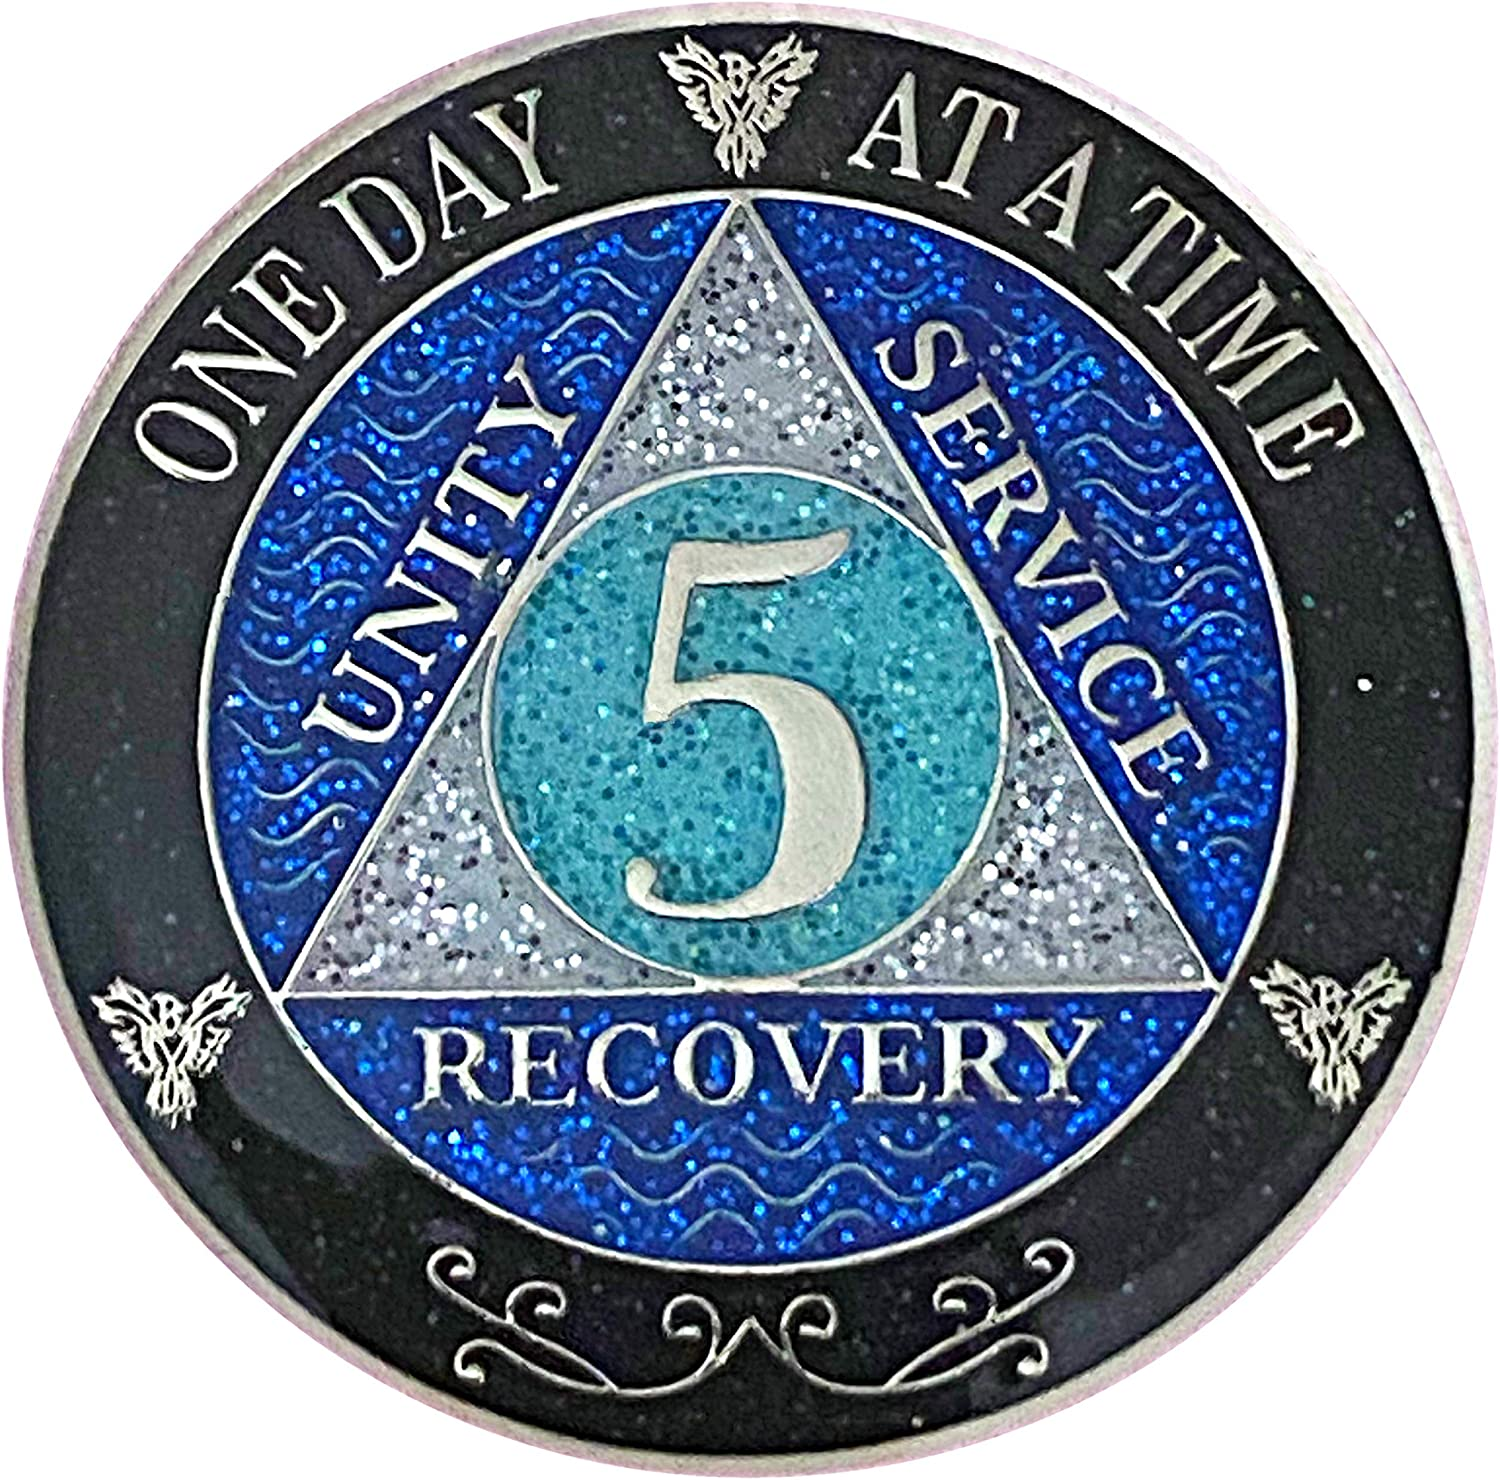 5 Year AA Recovery Silver Medallion Color Glitter Atlanta Mall Black Deluxe Plated